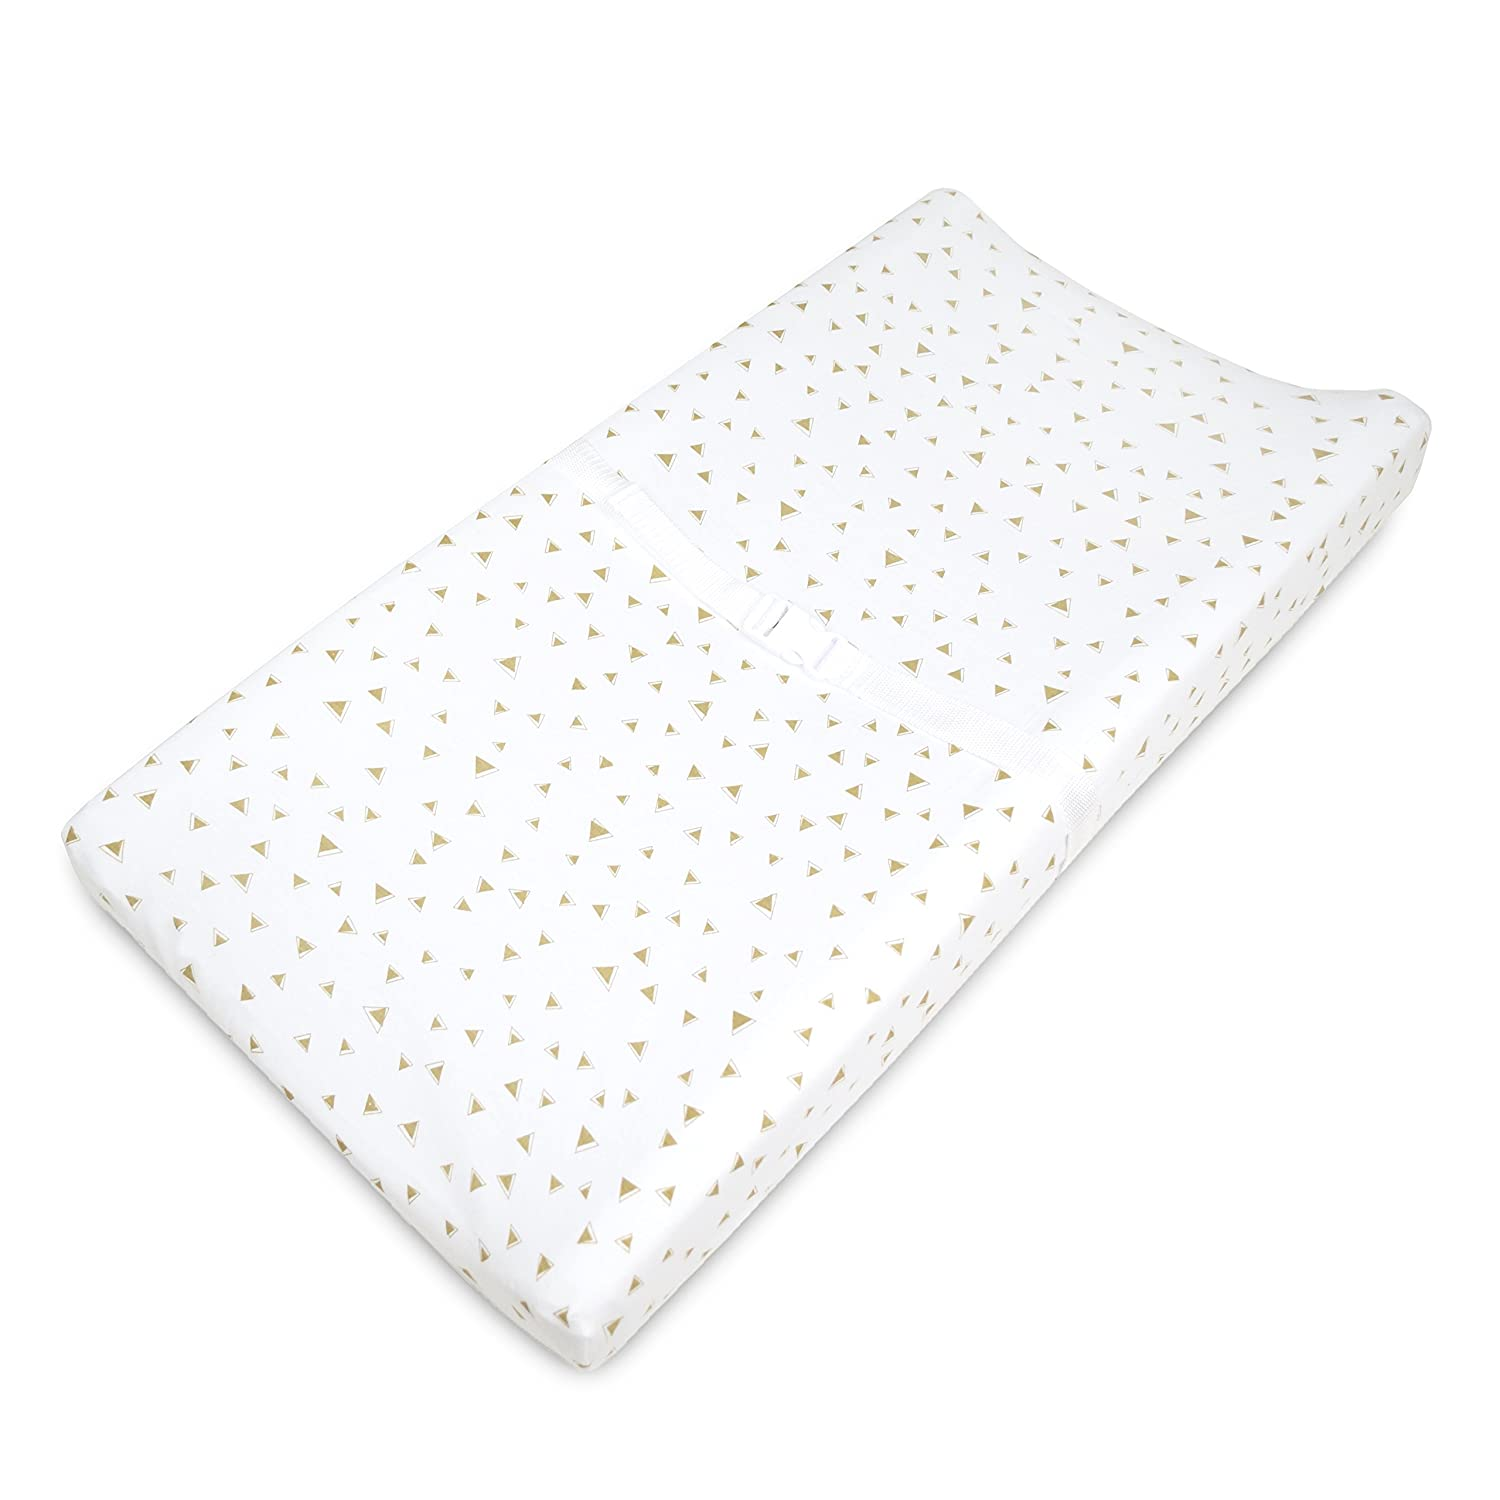 TL Care Printed 100/% Natural Cotton Jersey Knit Fitted Contoured Changing Table Pad Cover Sparkle Gold//Pink Arrows Soft Breathable for Girls